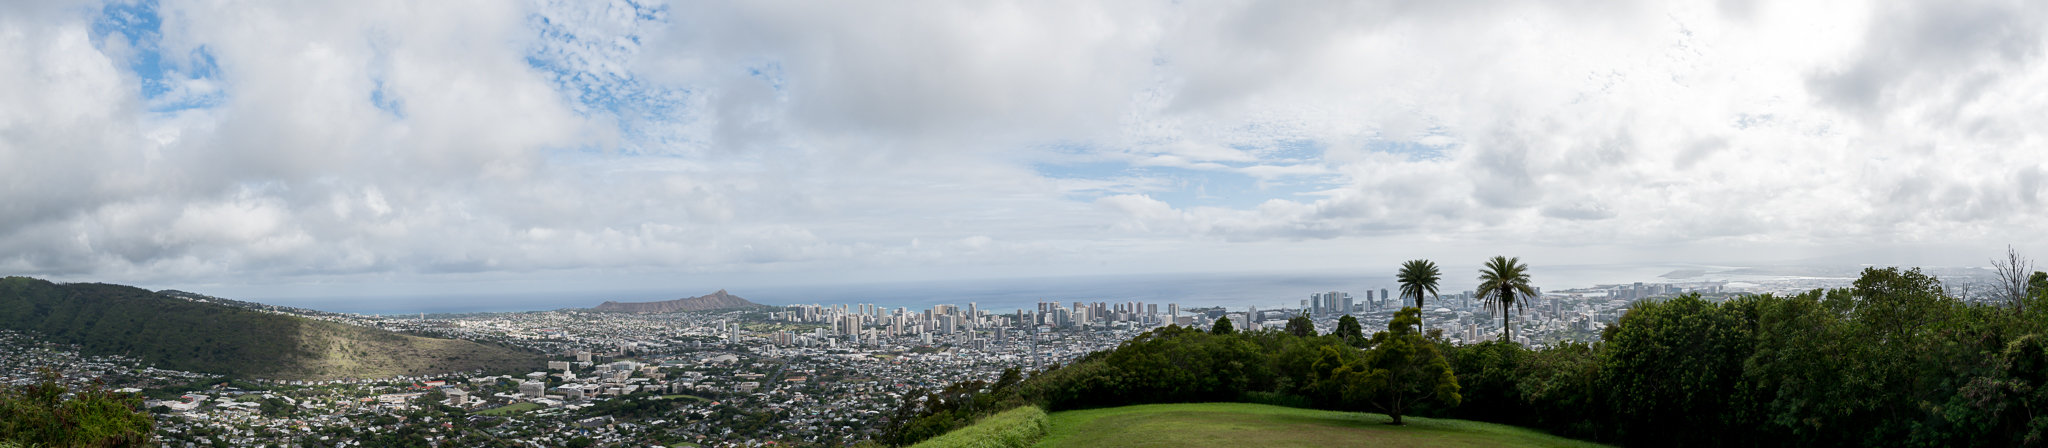 panoramic view of honolulu from tantalus